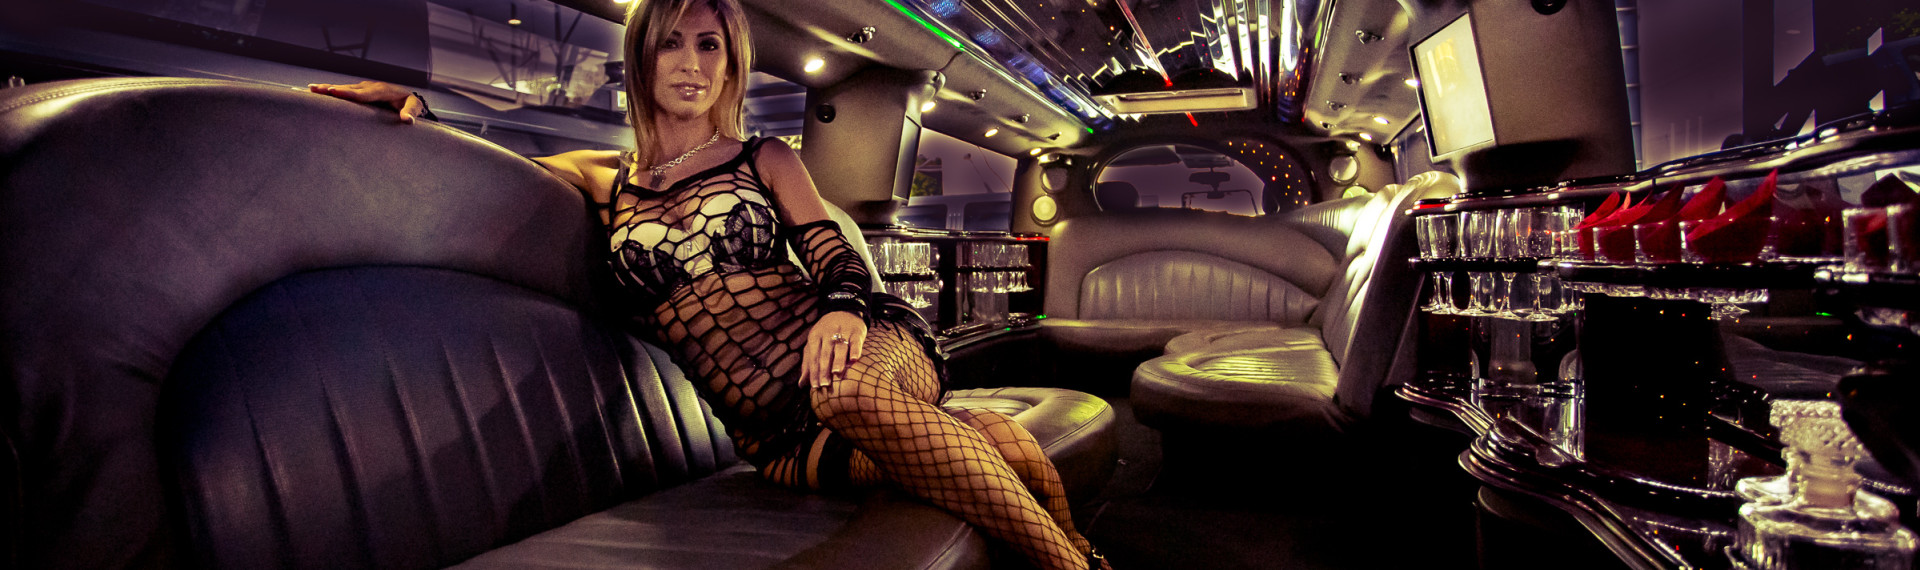 Strip-tease en limousine Prague